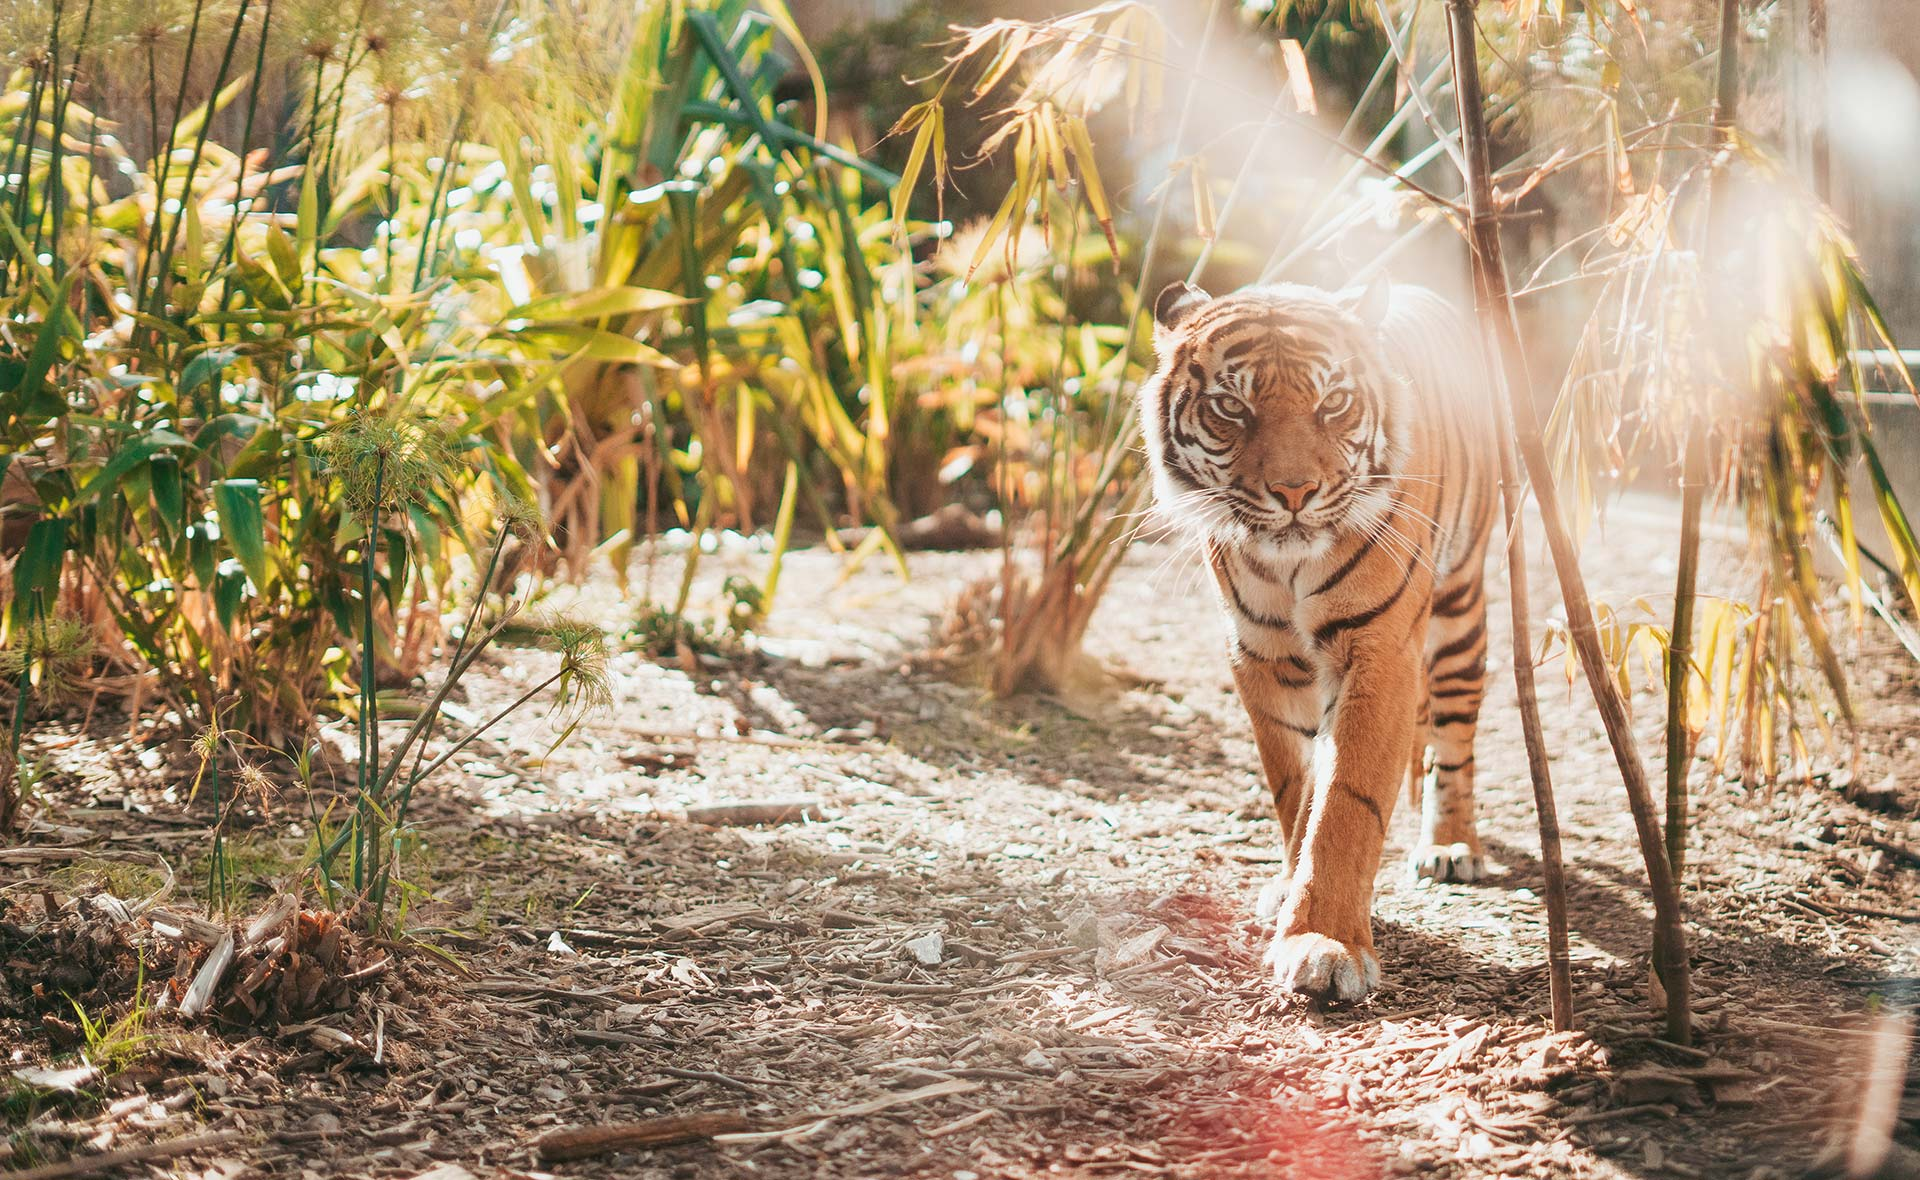 tiger walking near plants during daytime